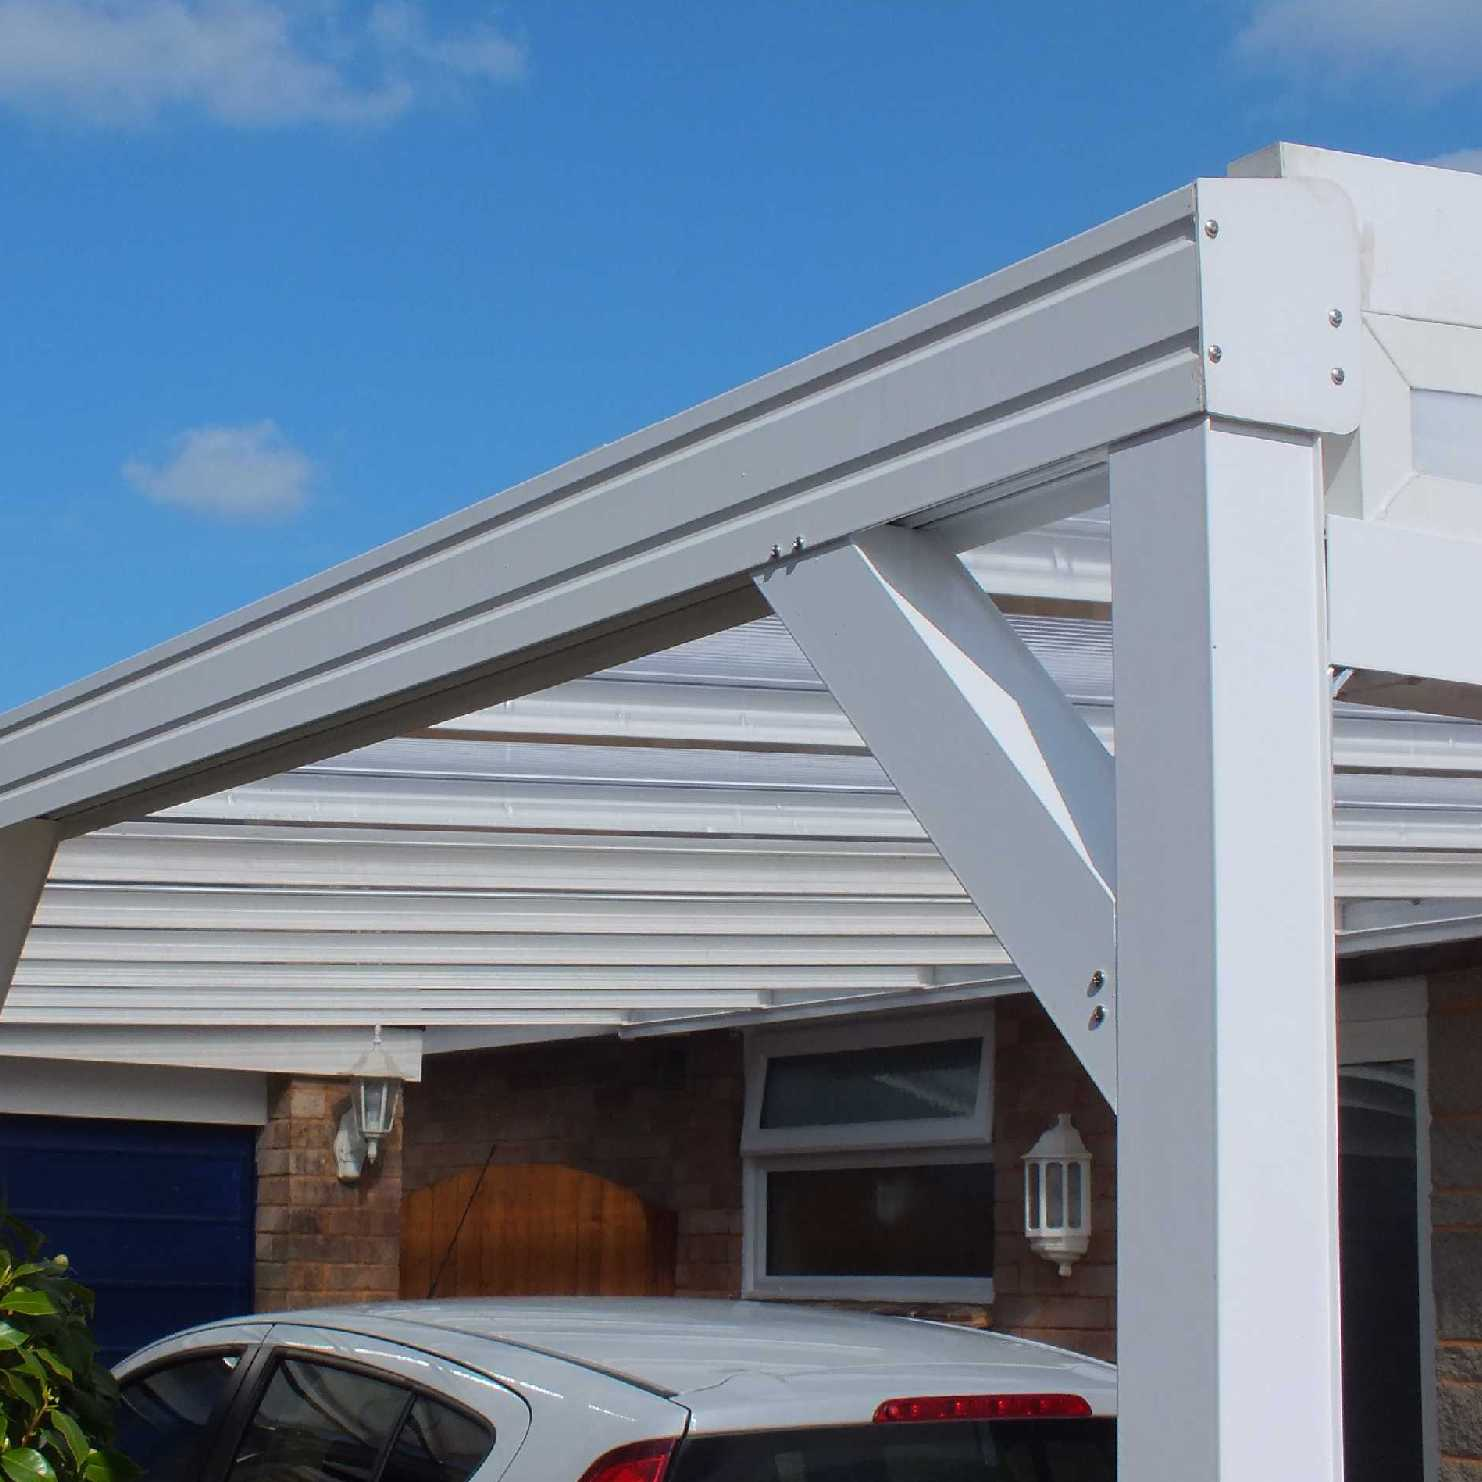 Great deals on Omega Smart White Lean-To Canopy with 16mm Polycarbonate Glazing - 10.2m (W) x 4.5m (P), (5) Supporting Posts